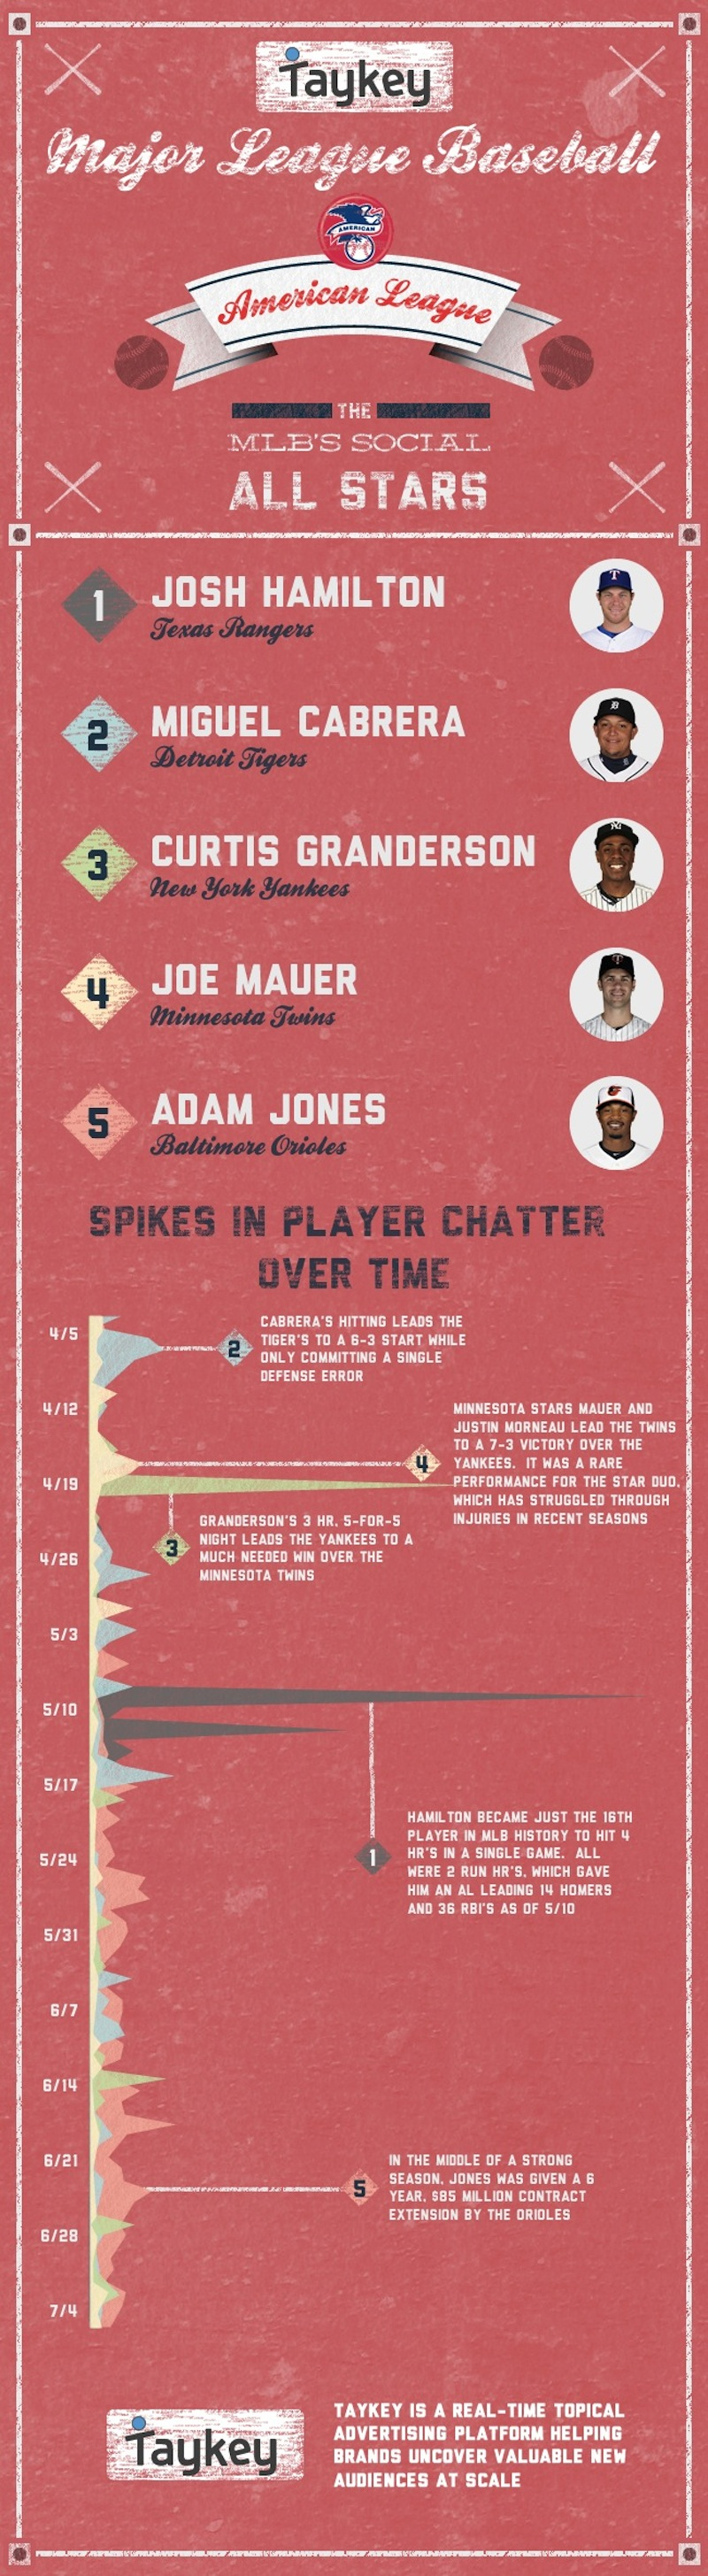 MLB All Stars Social Buzz-infographic